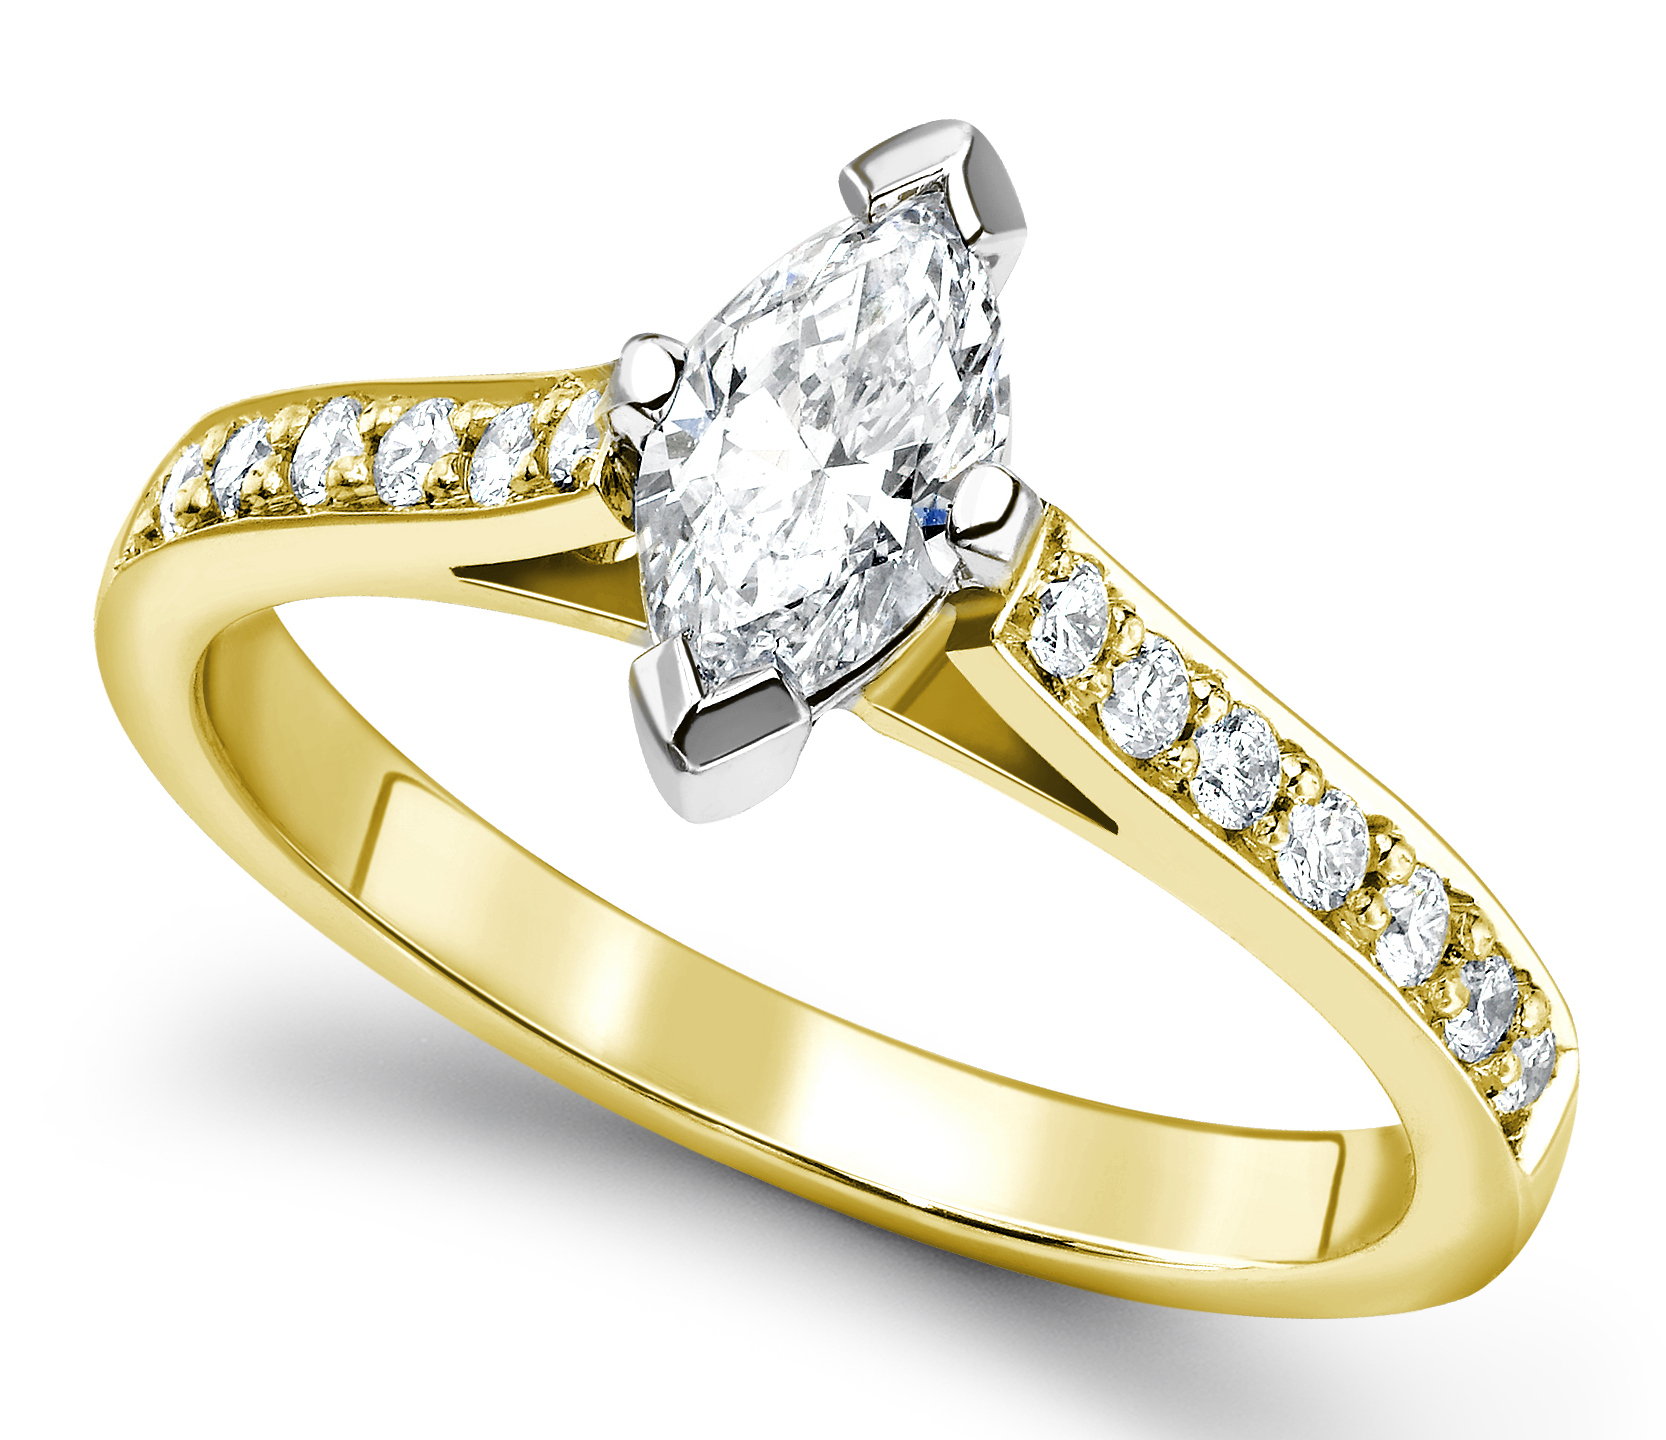 Marquise Cut Yellow Gold Ring with Pave Set Shoulders GRC554YG Main Image